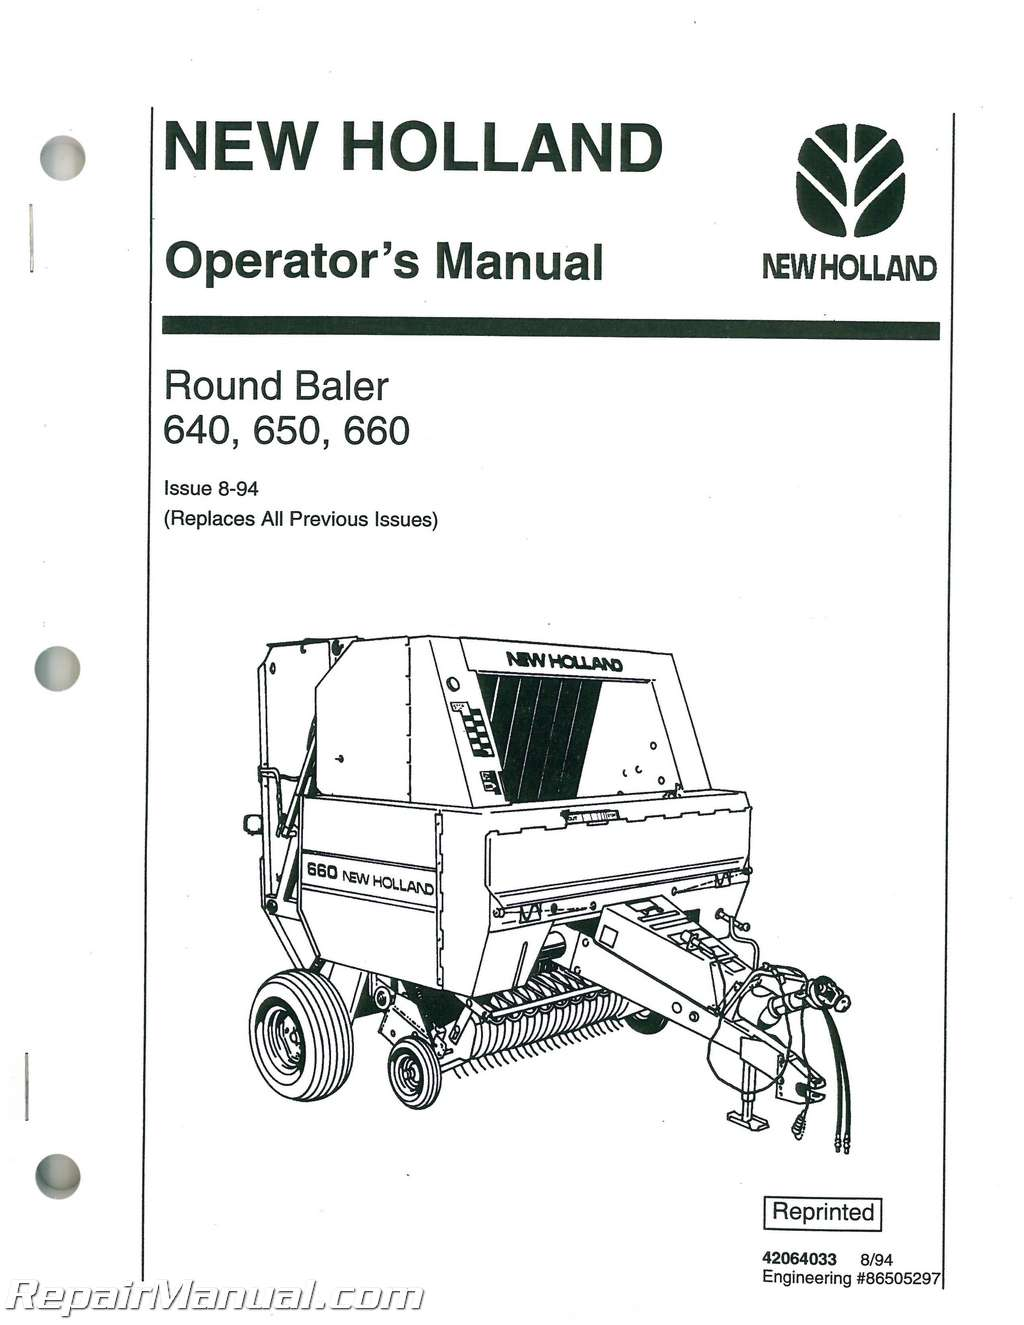 new holland 640 650 660 large round baler operators manual rh repairmanual com new holland manual lgt14d new holland manuals online